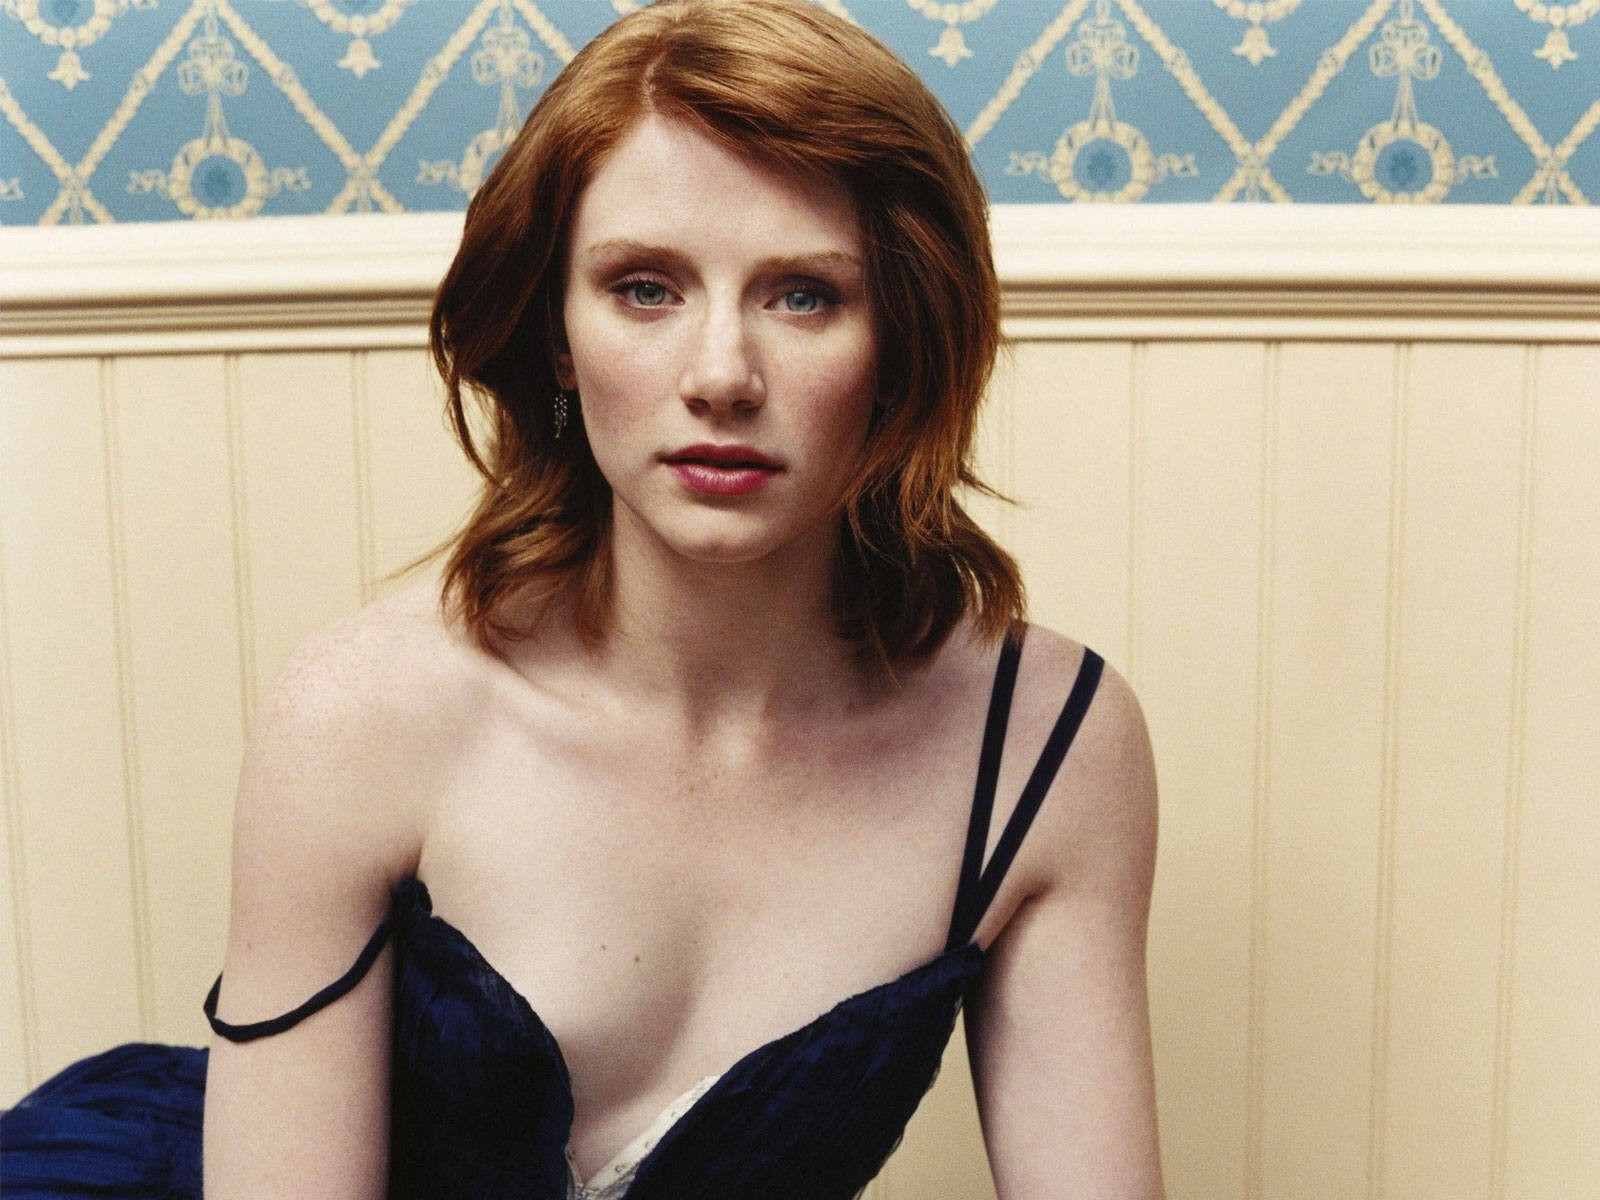 Wallpaper : una sensuale Bryce Dallas Howard